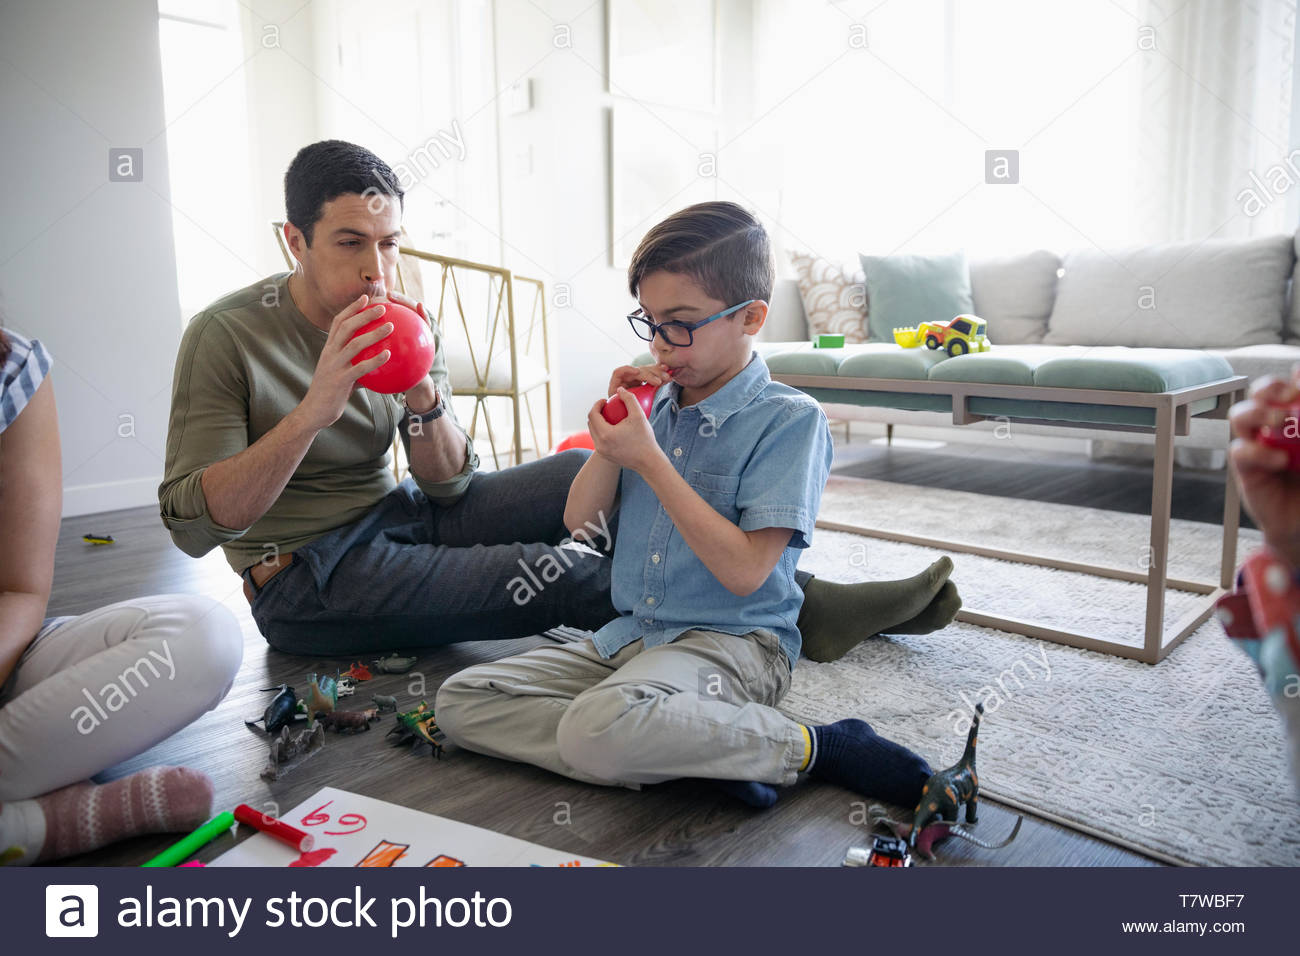 Father and son blowing up birthday balloons in living room - Stock Image